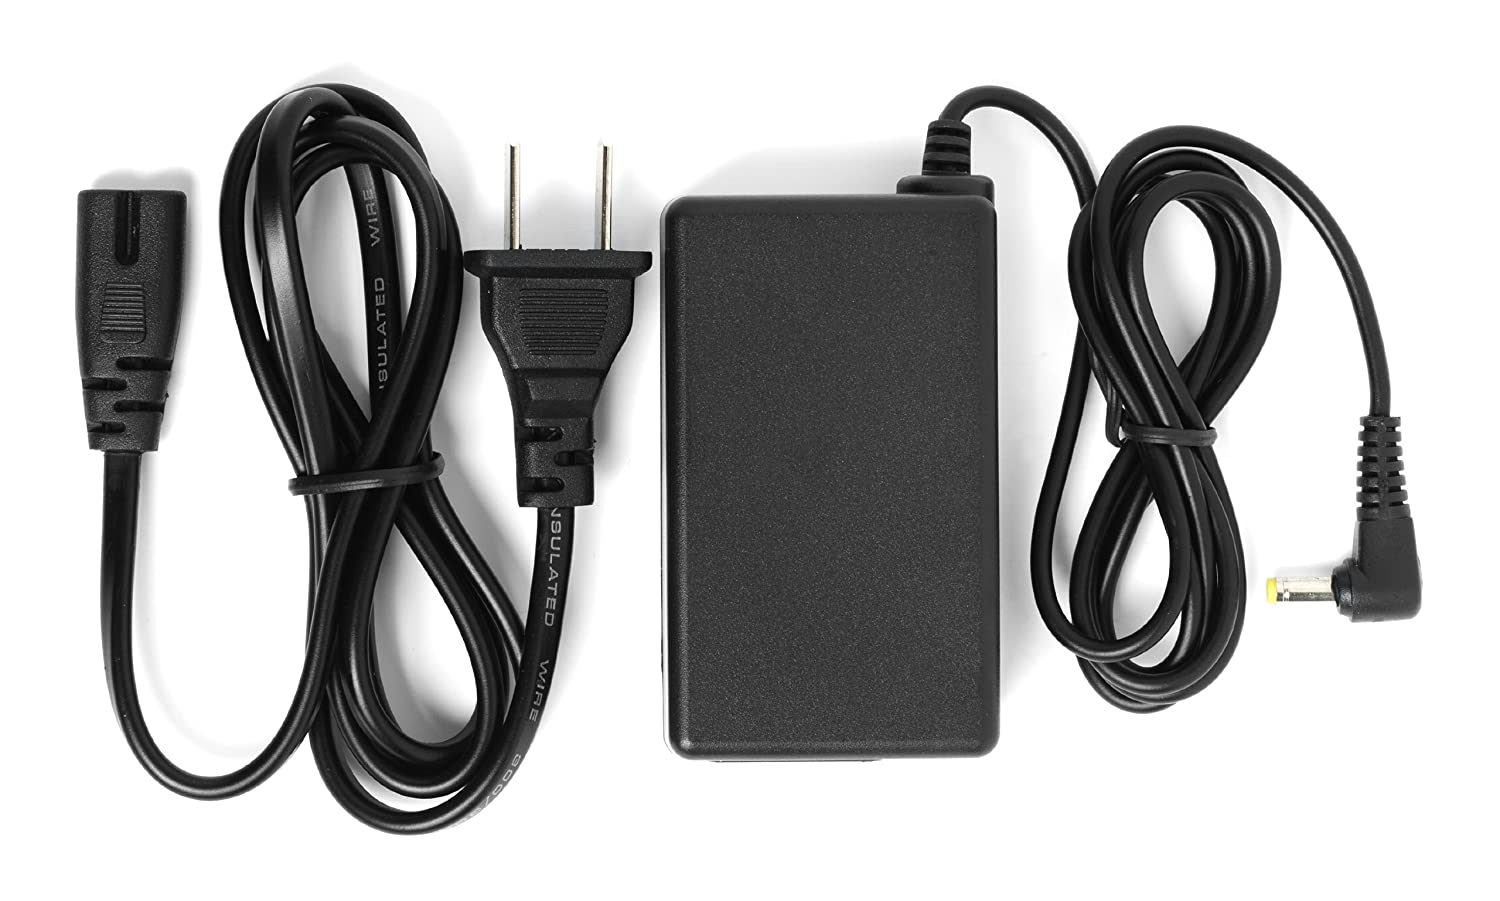 StyleZ 5V Wall Charger Power AC Adapter Charging Charger with US Plug for PSP 1000 2000 3000